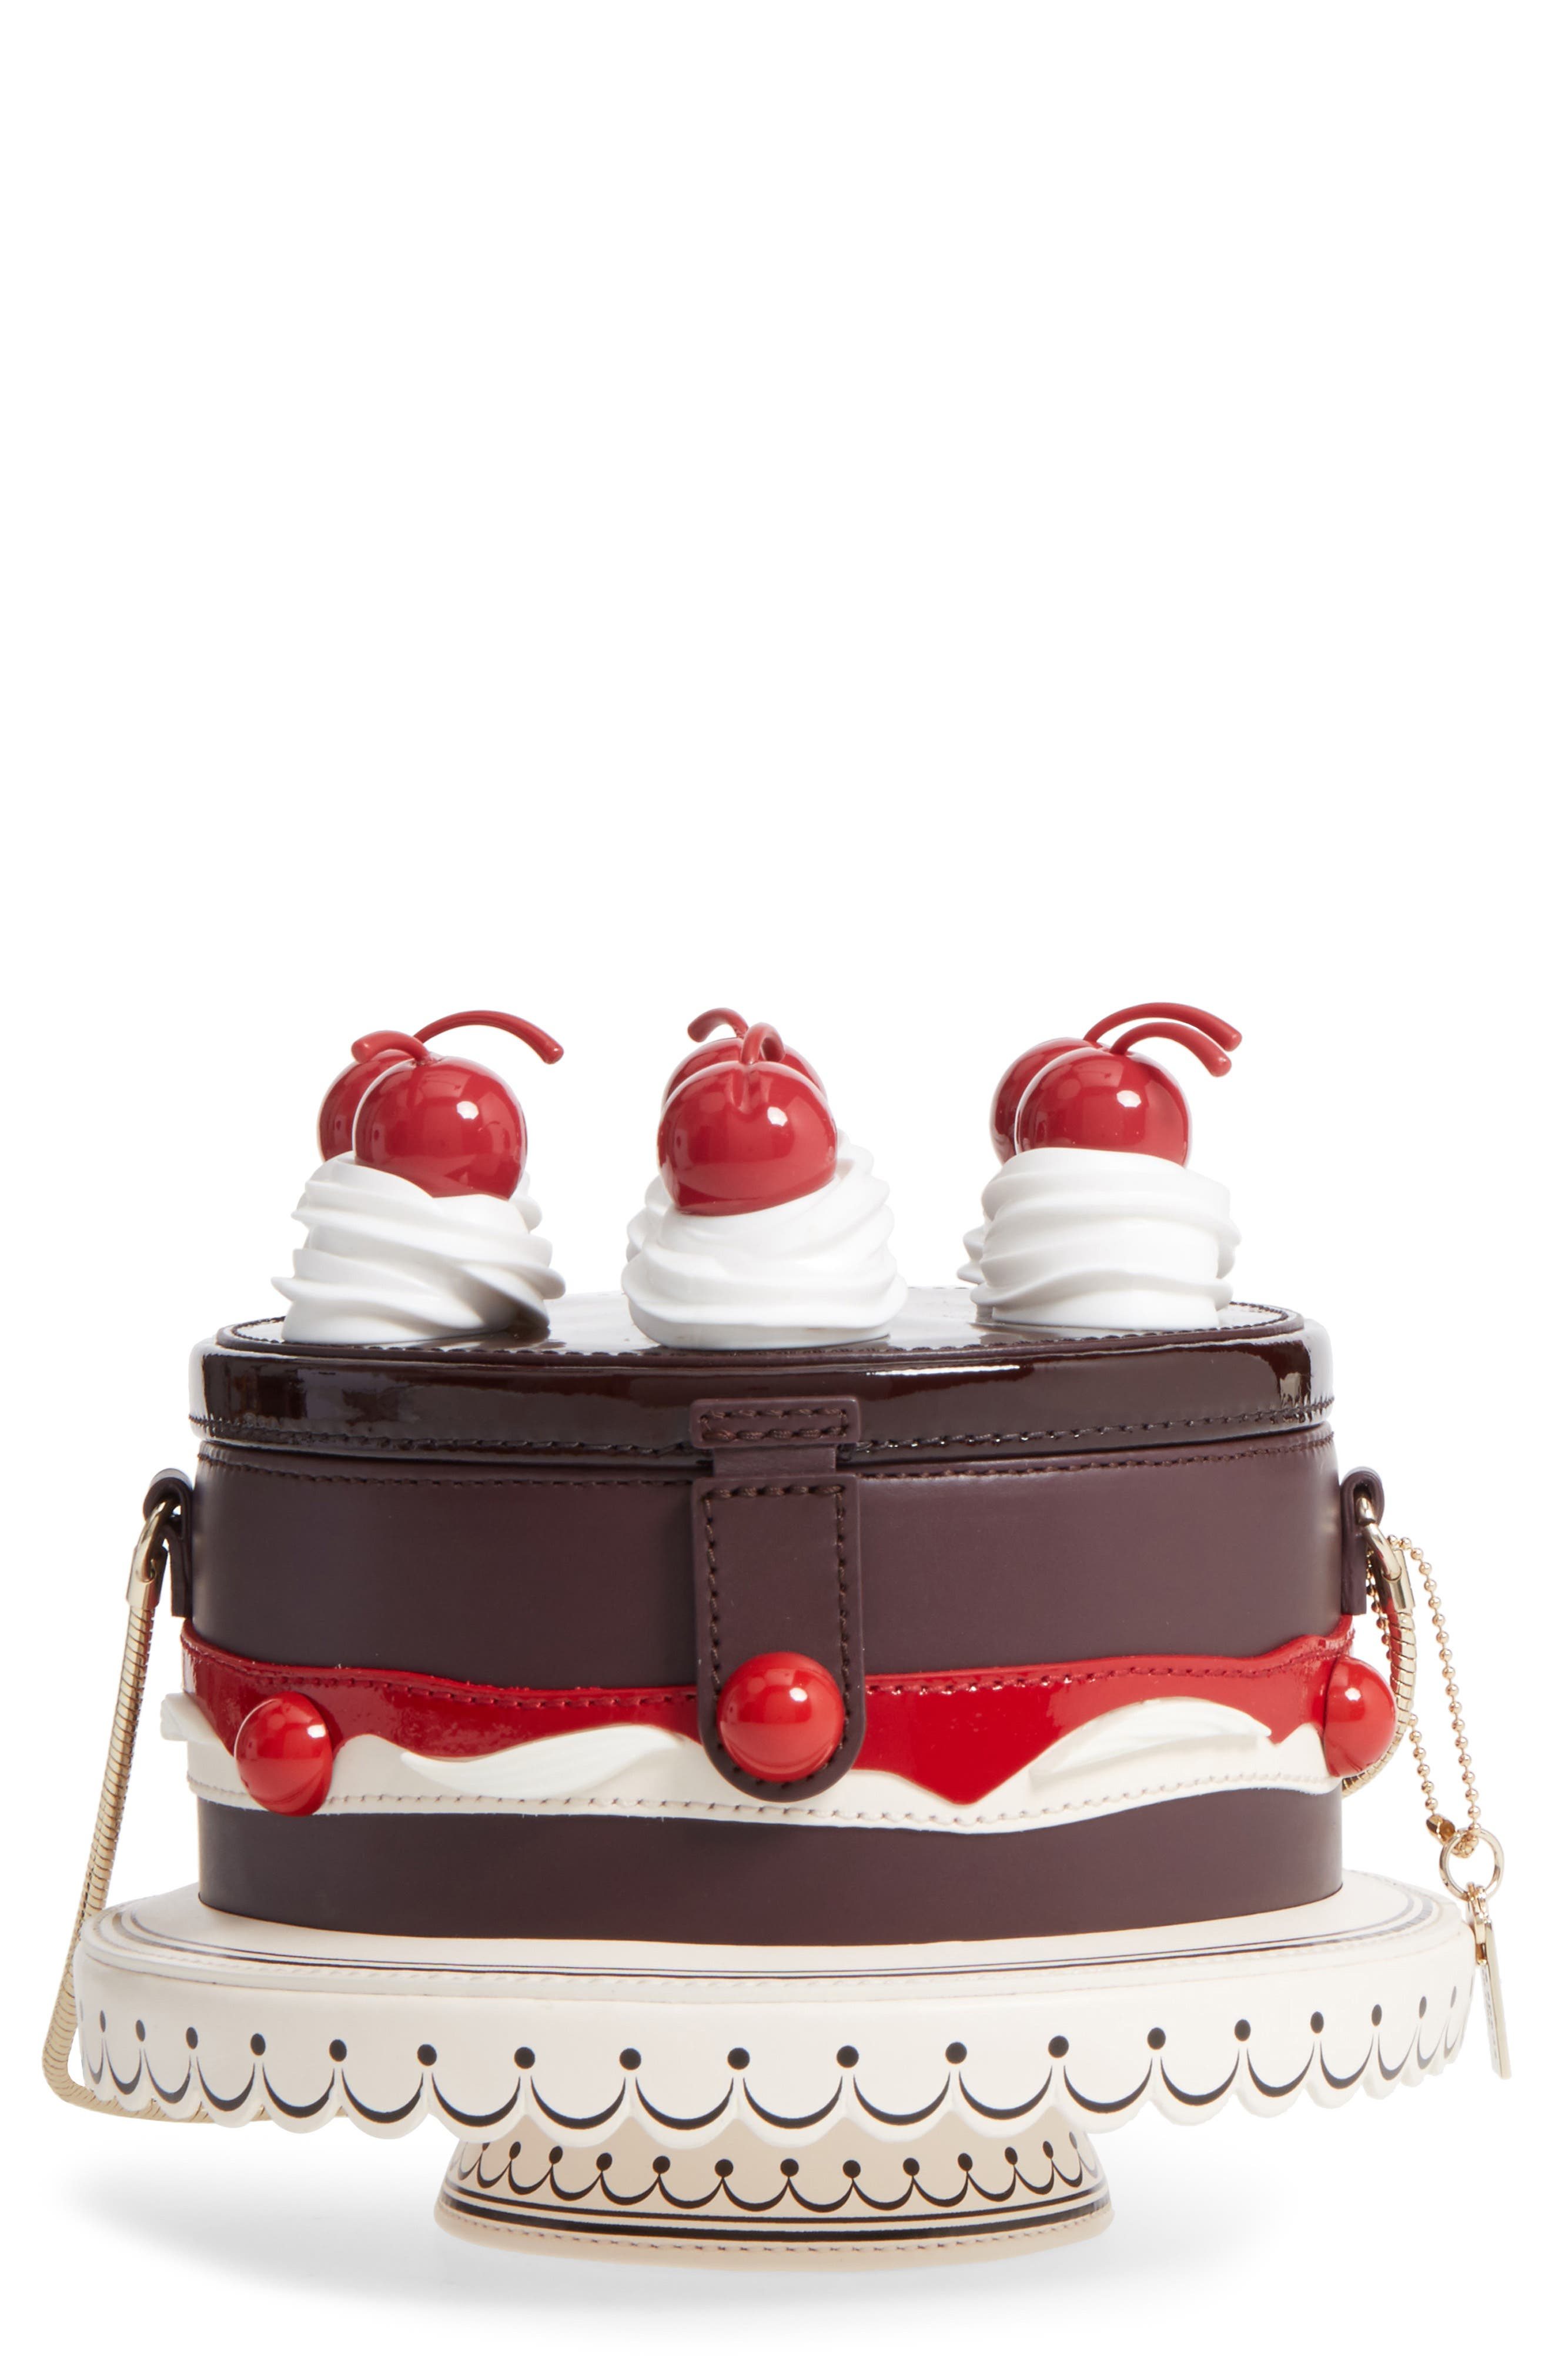 Main Image - kate spade new york ma cherie - cherry cake leather shoulder bag